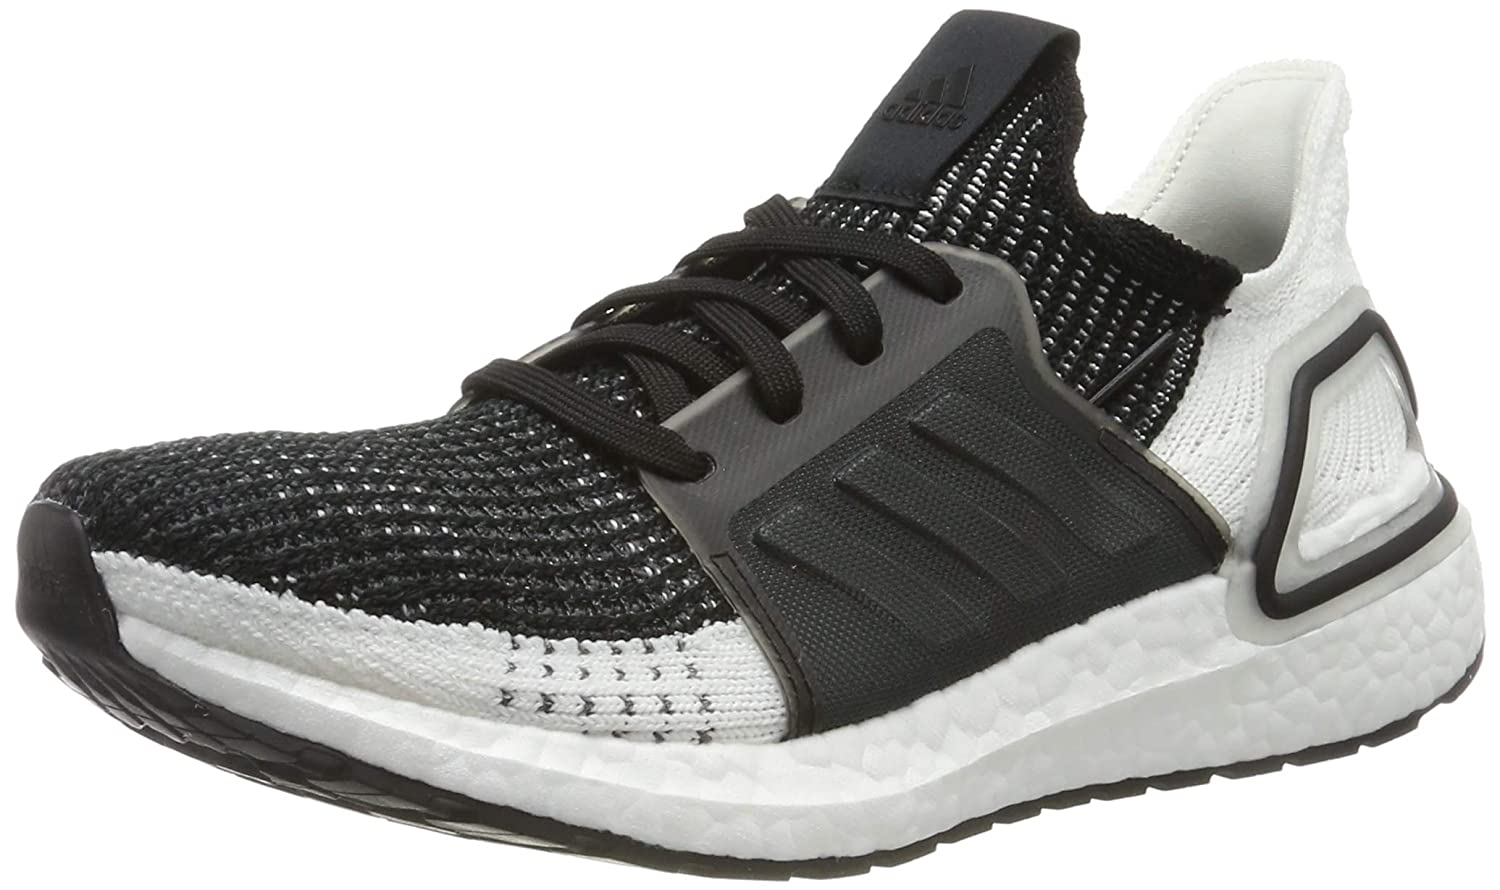 adidas Ultraboost 19 W, Zapatillas de Running para Mujer, Negro (Core Black/Grey Six/Grey Four F17 Core Black/Grey Six/Grey Four F17), 36 EU: Amazon.es: Zapatos y complementos